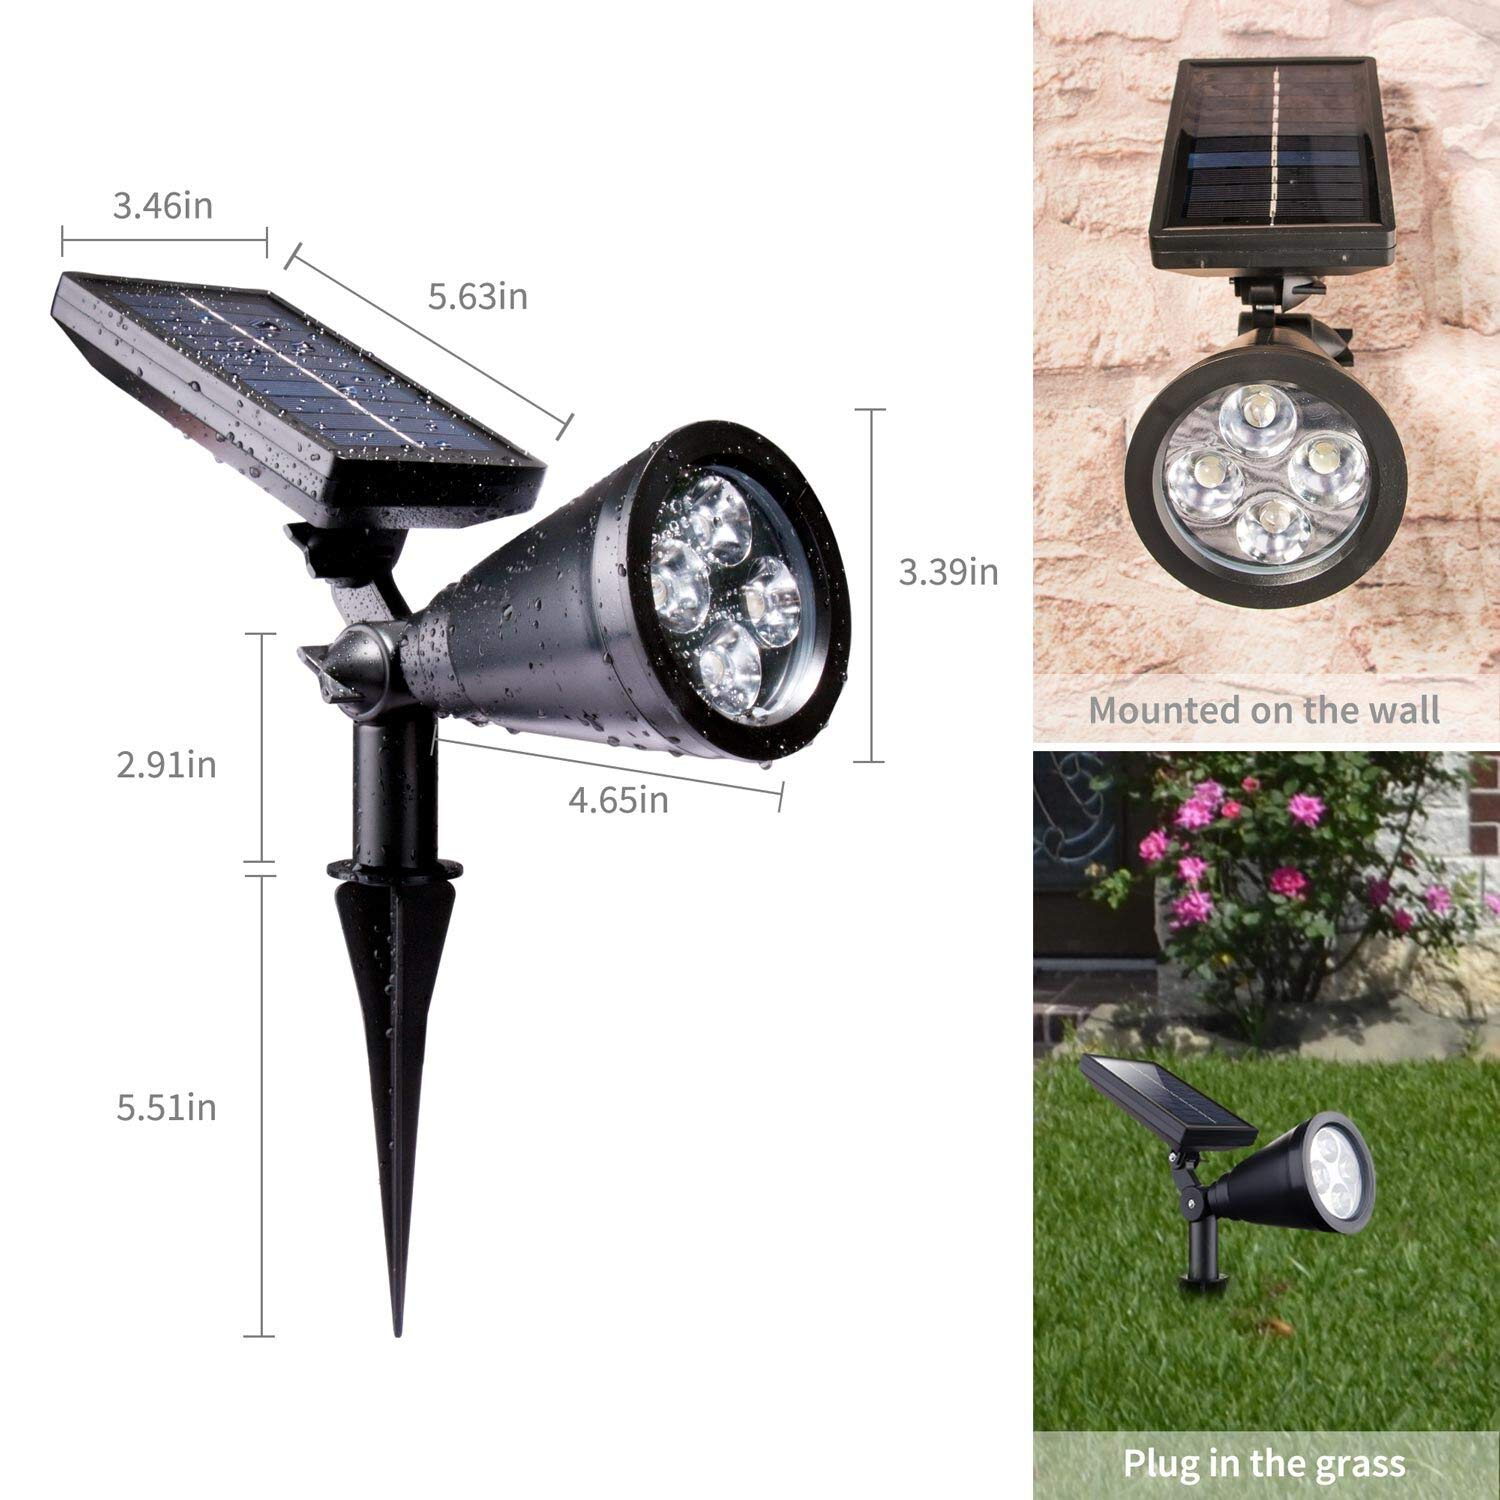 2 Pack Upgraded Outdoor Solar Spot Lights - Waterproof Adjustable Yard Lights Solar Landscape Lights for Outdoor Garden Pathway Driveway Lawn Walkway Lighting Illumination, Auto On/Off Bright White by Brightown (Image #2)